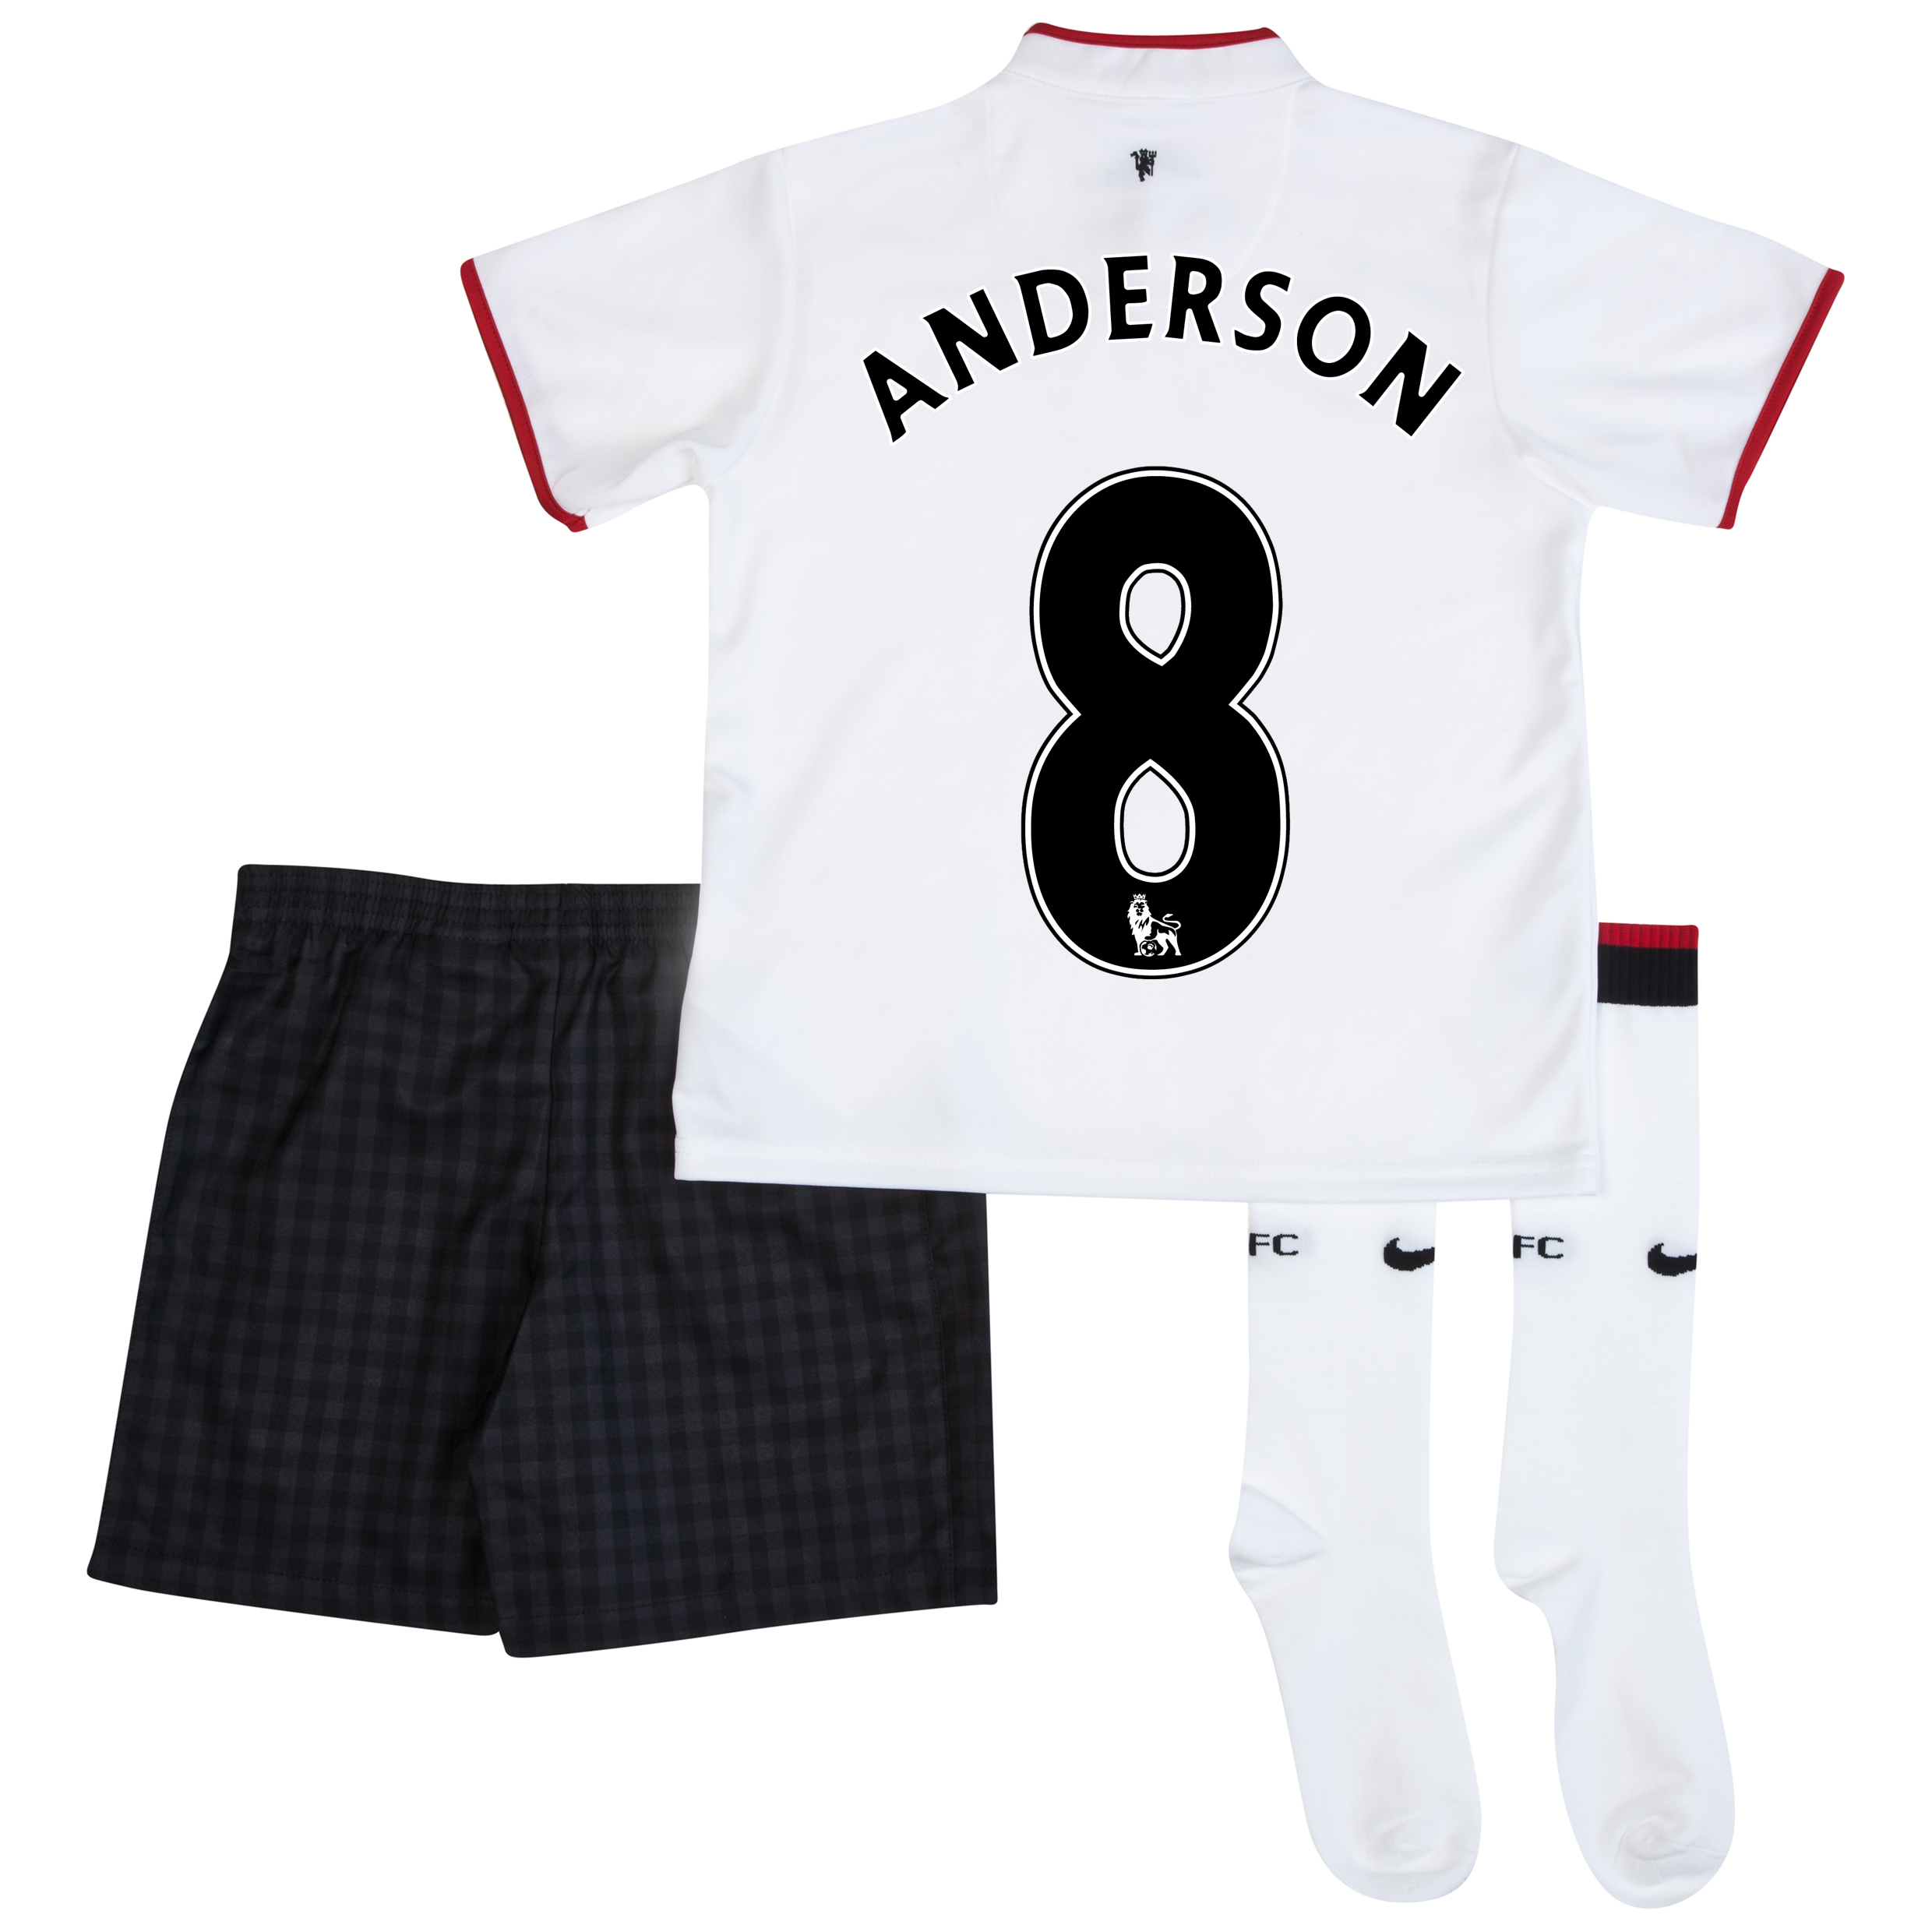 Manchester United Away Kit 2012/13 - Little Boys with Anderson 8 printing